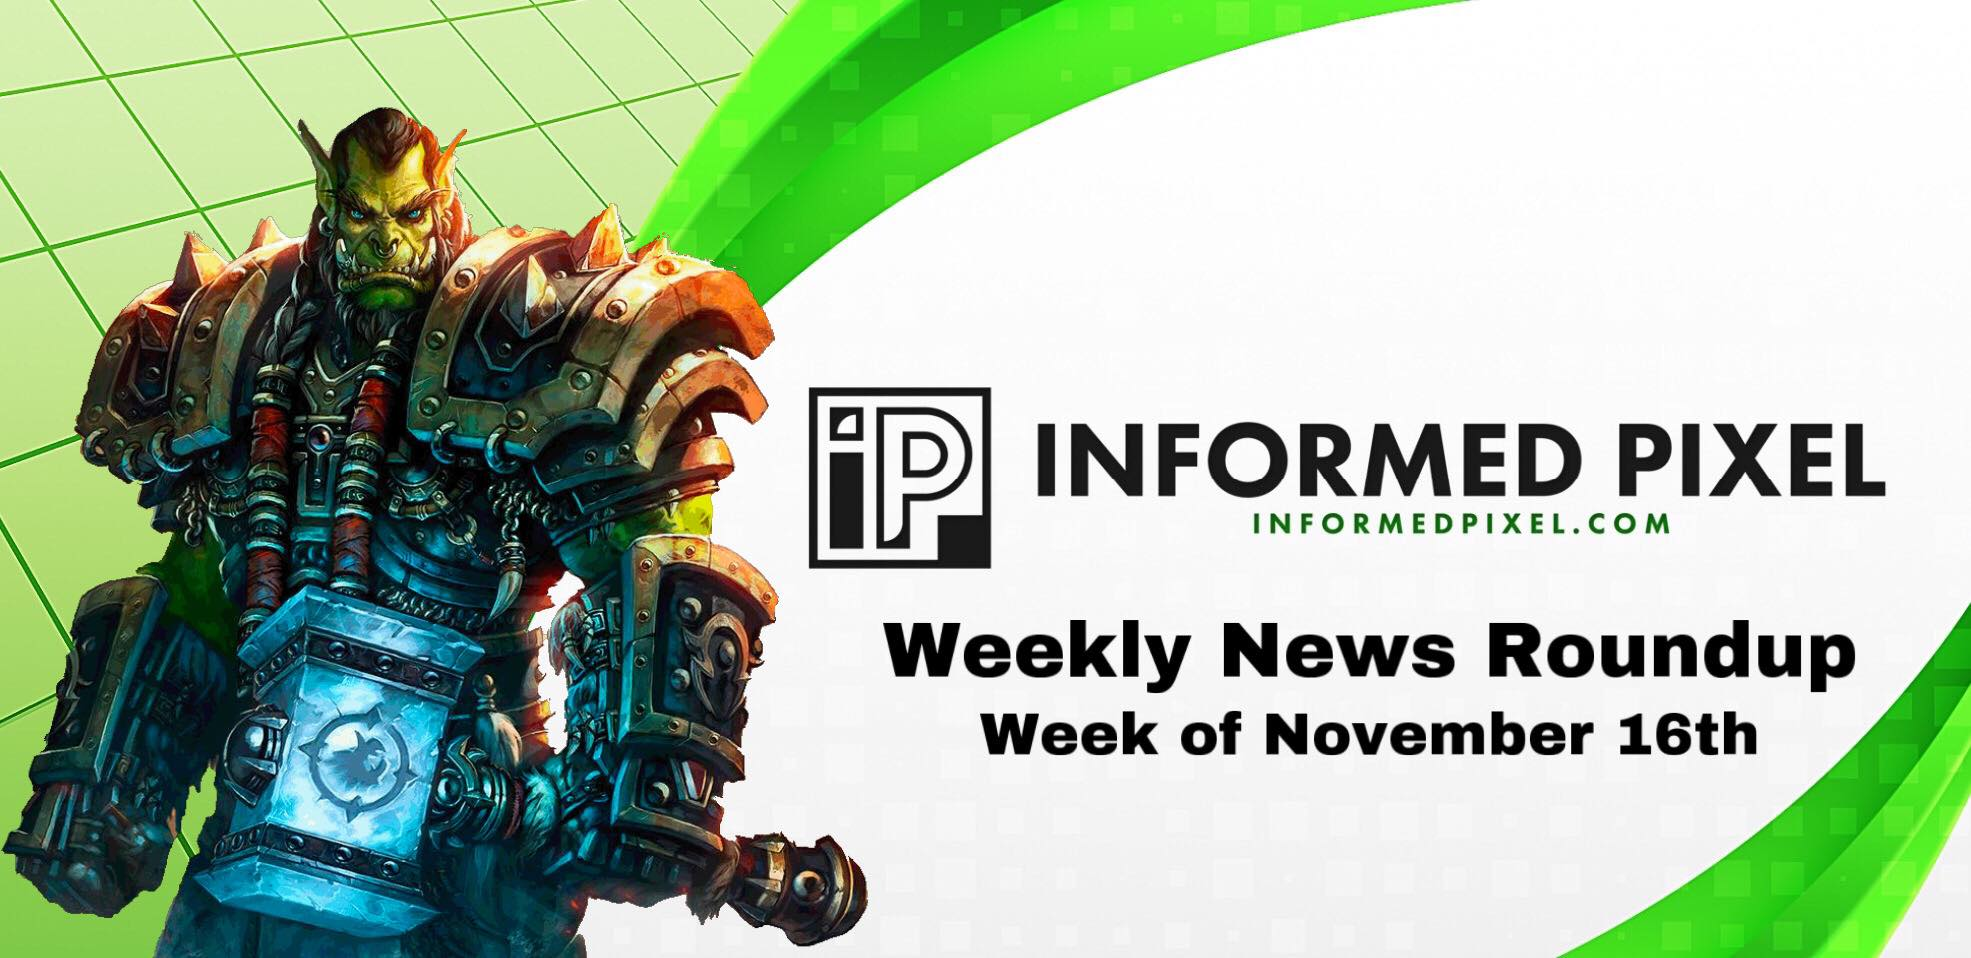 Weekly News Roundup – Week of November 16th